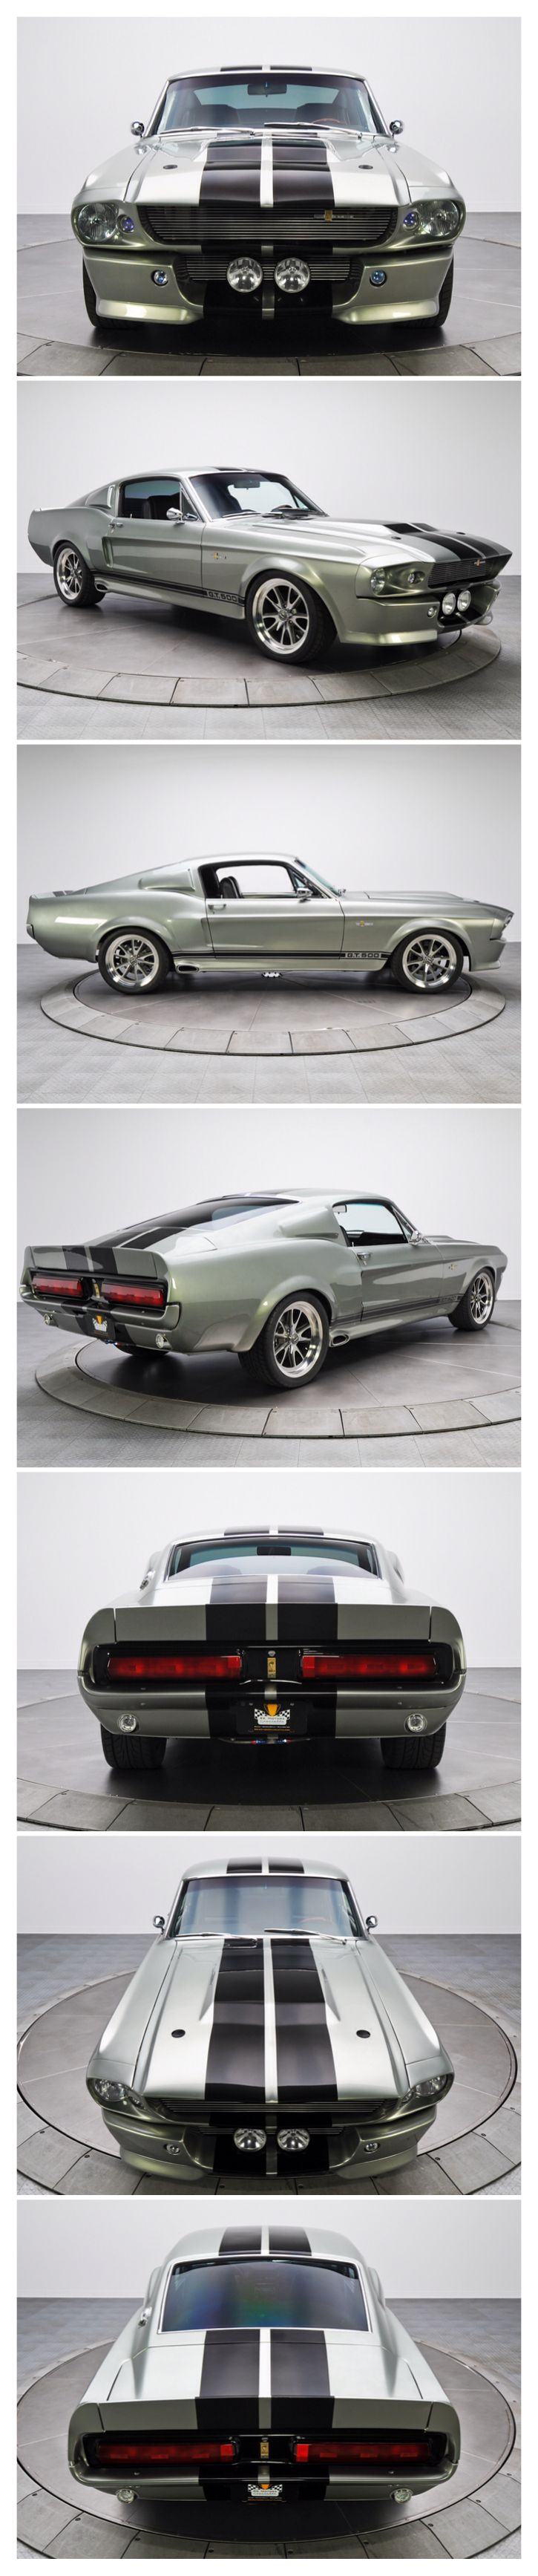 1967 Ford Eleanor GT #realestate  Contact The Mark Gunning Team  with West USA Realty. www.markgunning.com